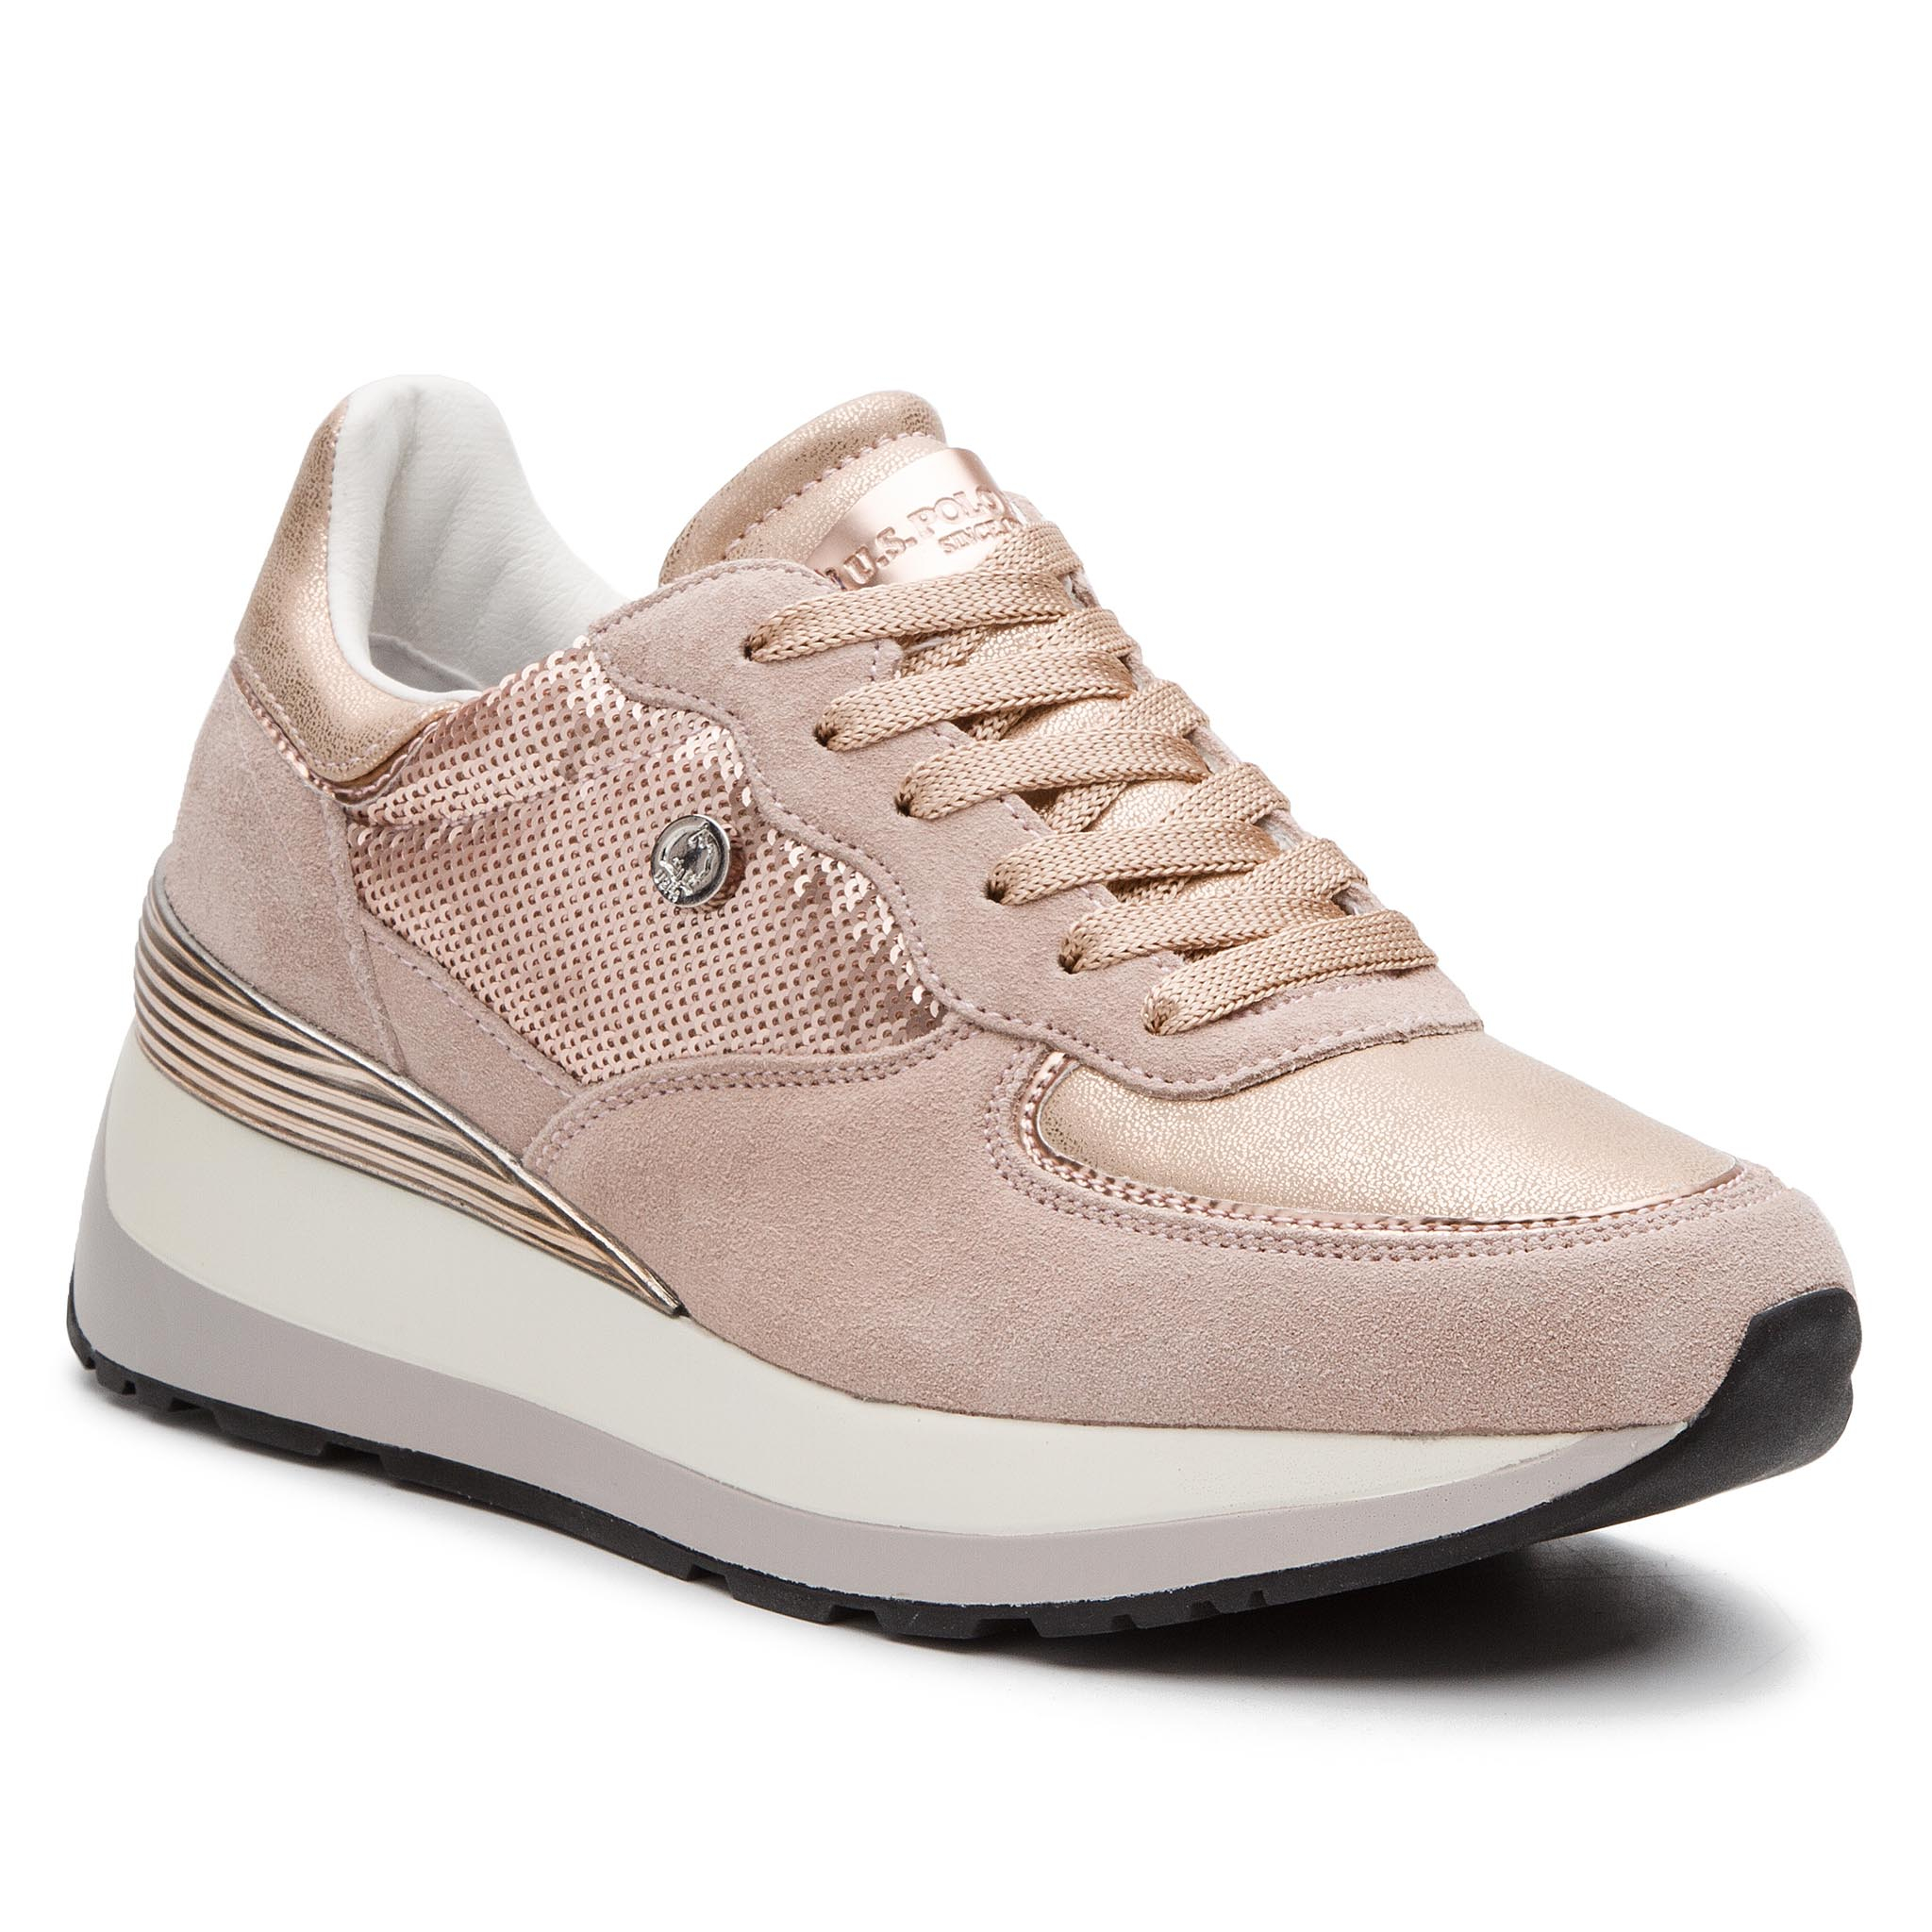 Sneakers U.S. POLO ASSN. - Valery1 Paillettes YLA4011W8/ST1 Pink